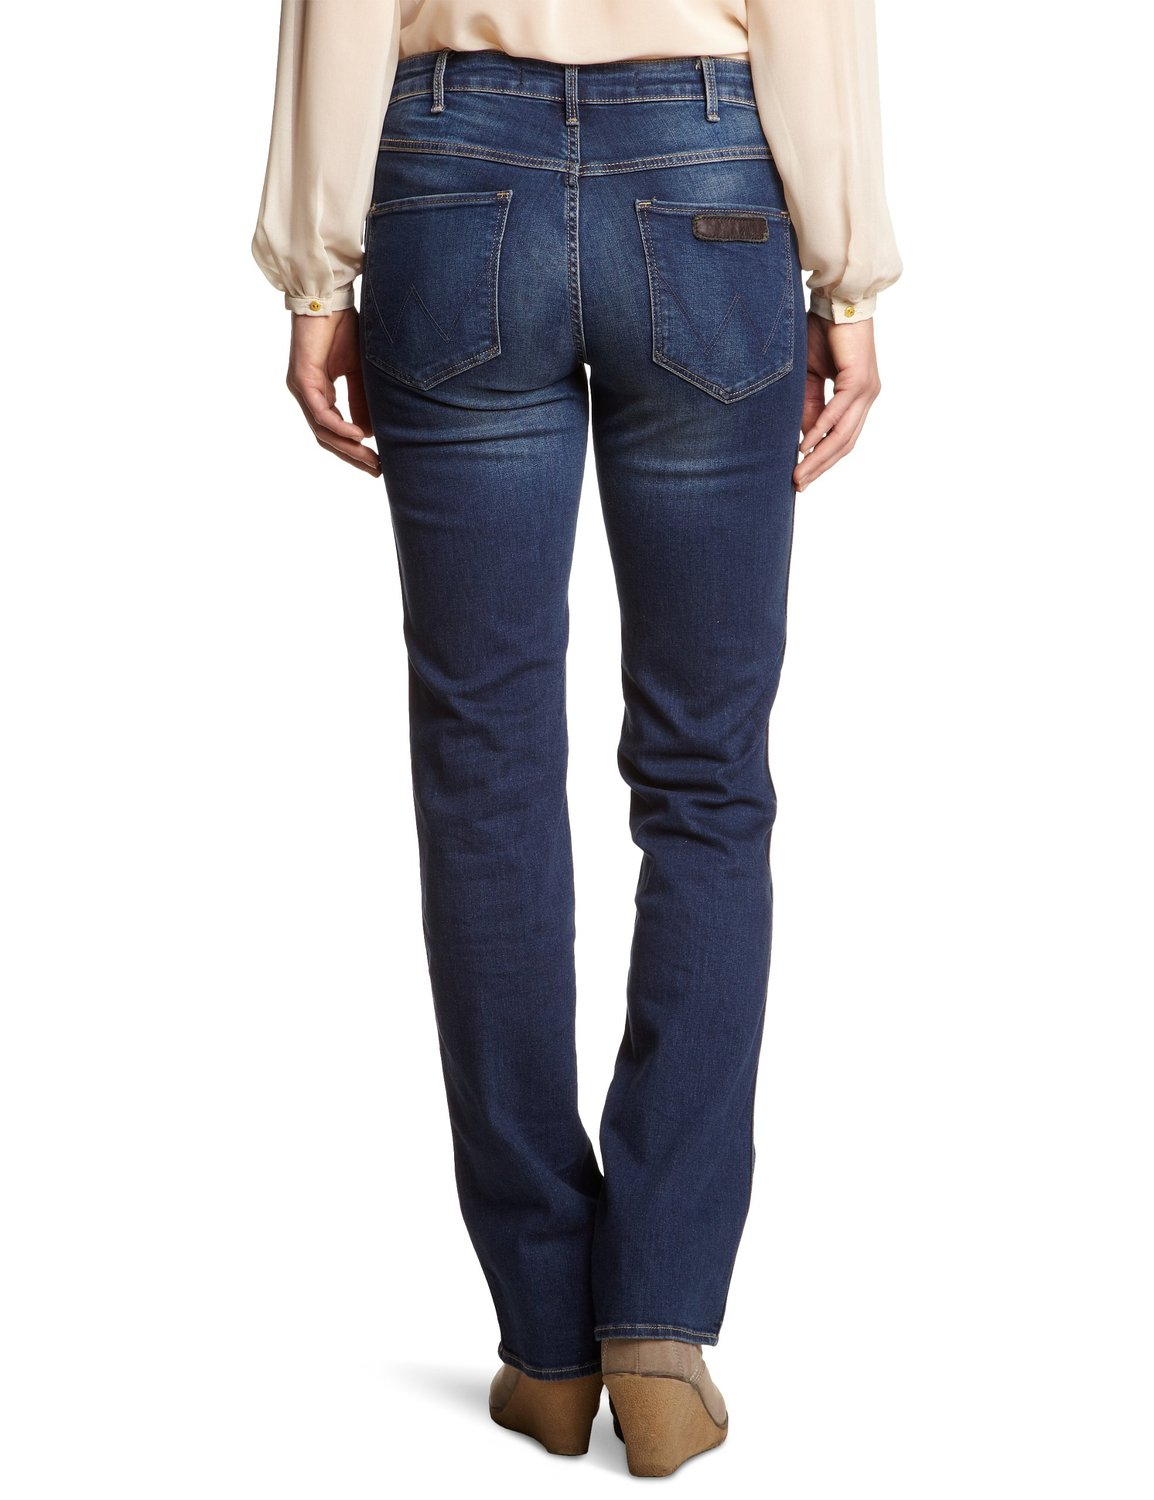 Shop the latest trends in women's and men's clothing at Express! Find your favorite jeans, sweaters, dresses, suits, coats and more.